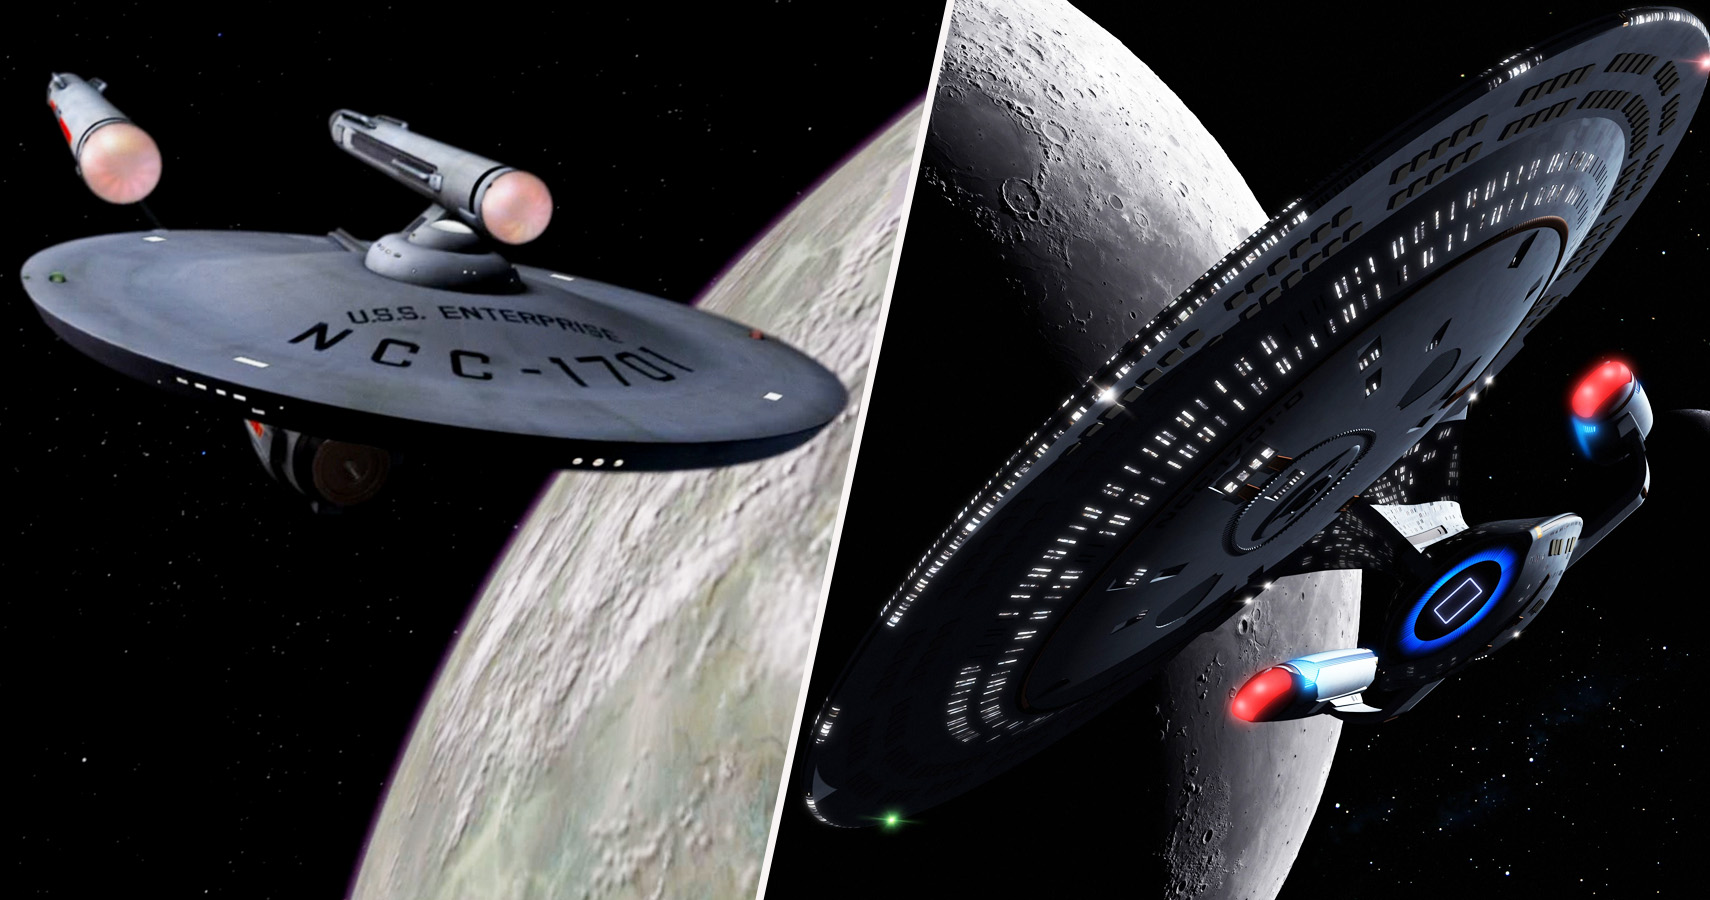 Star Trek: The 15 Most Powerful Versions Of The Enterprise, Ranked